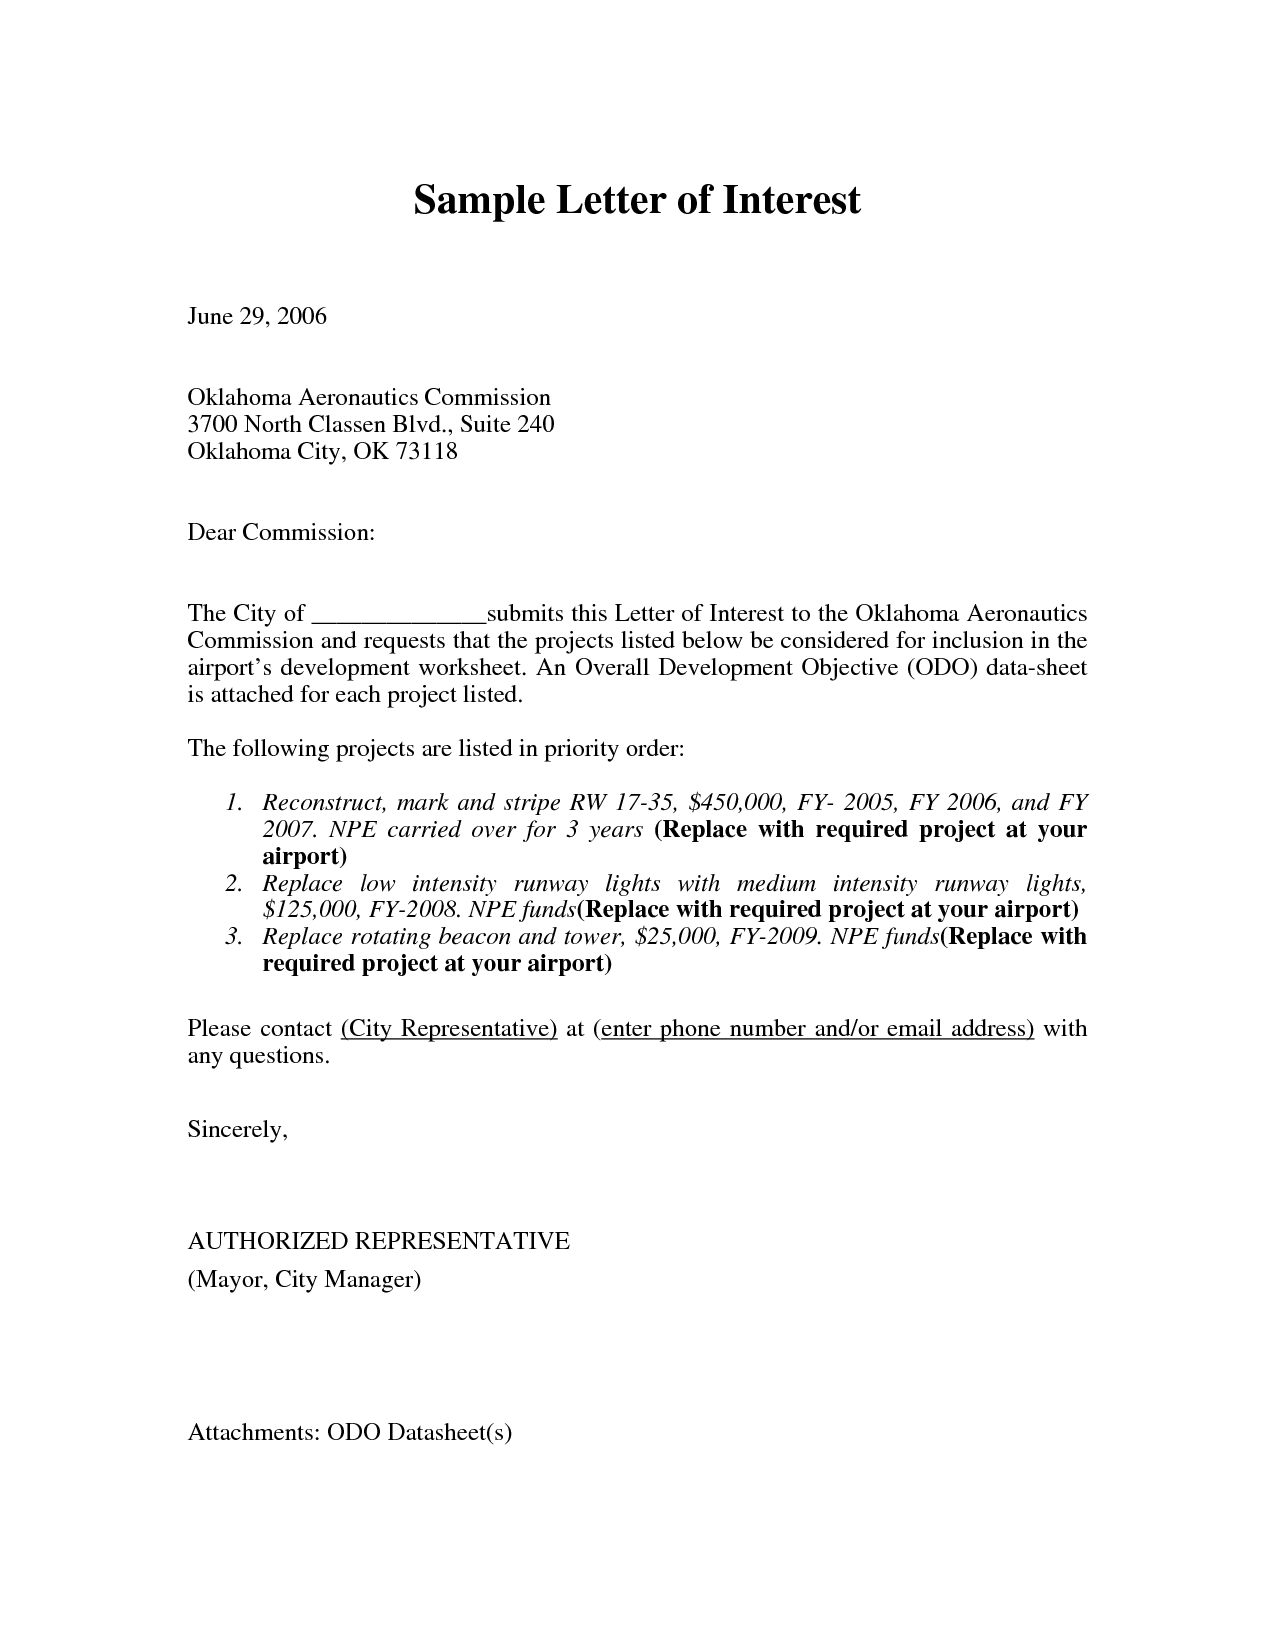 Job Letter of Interest